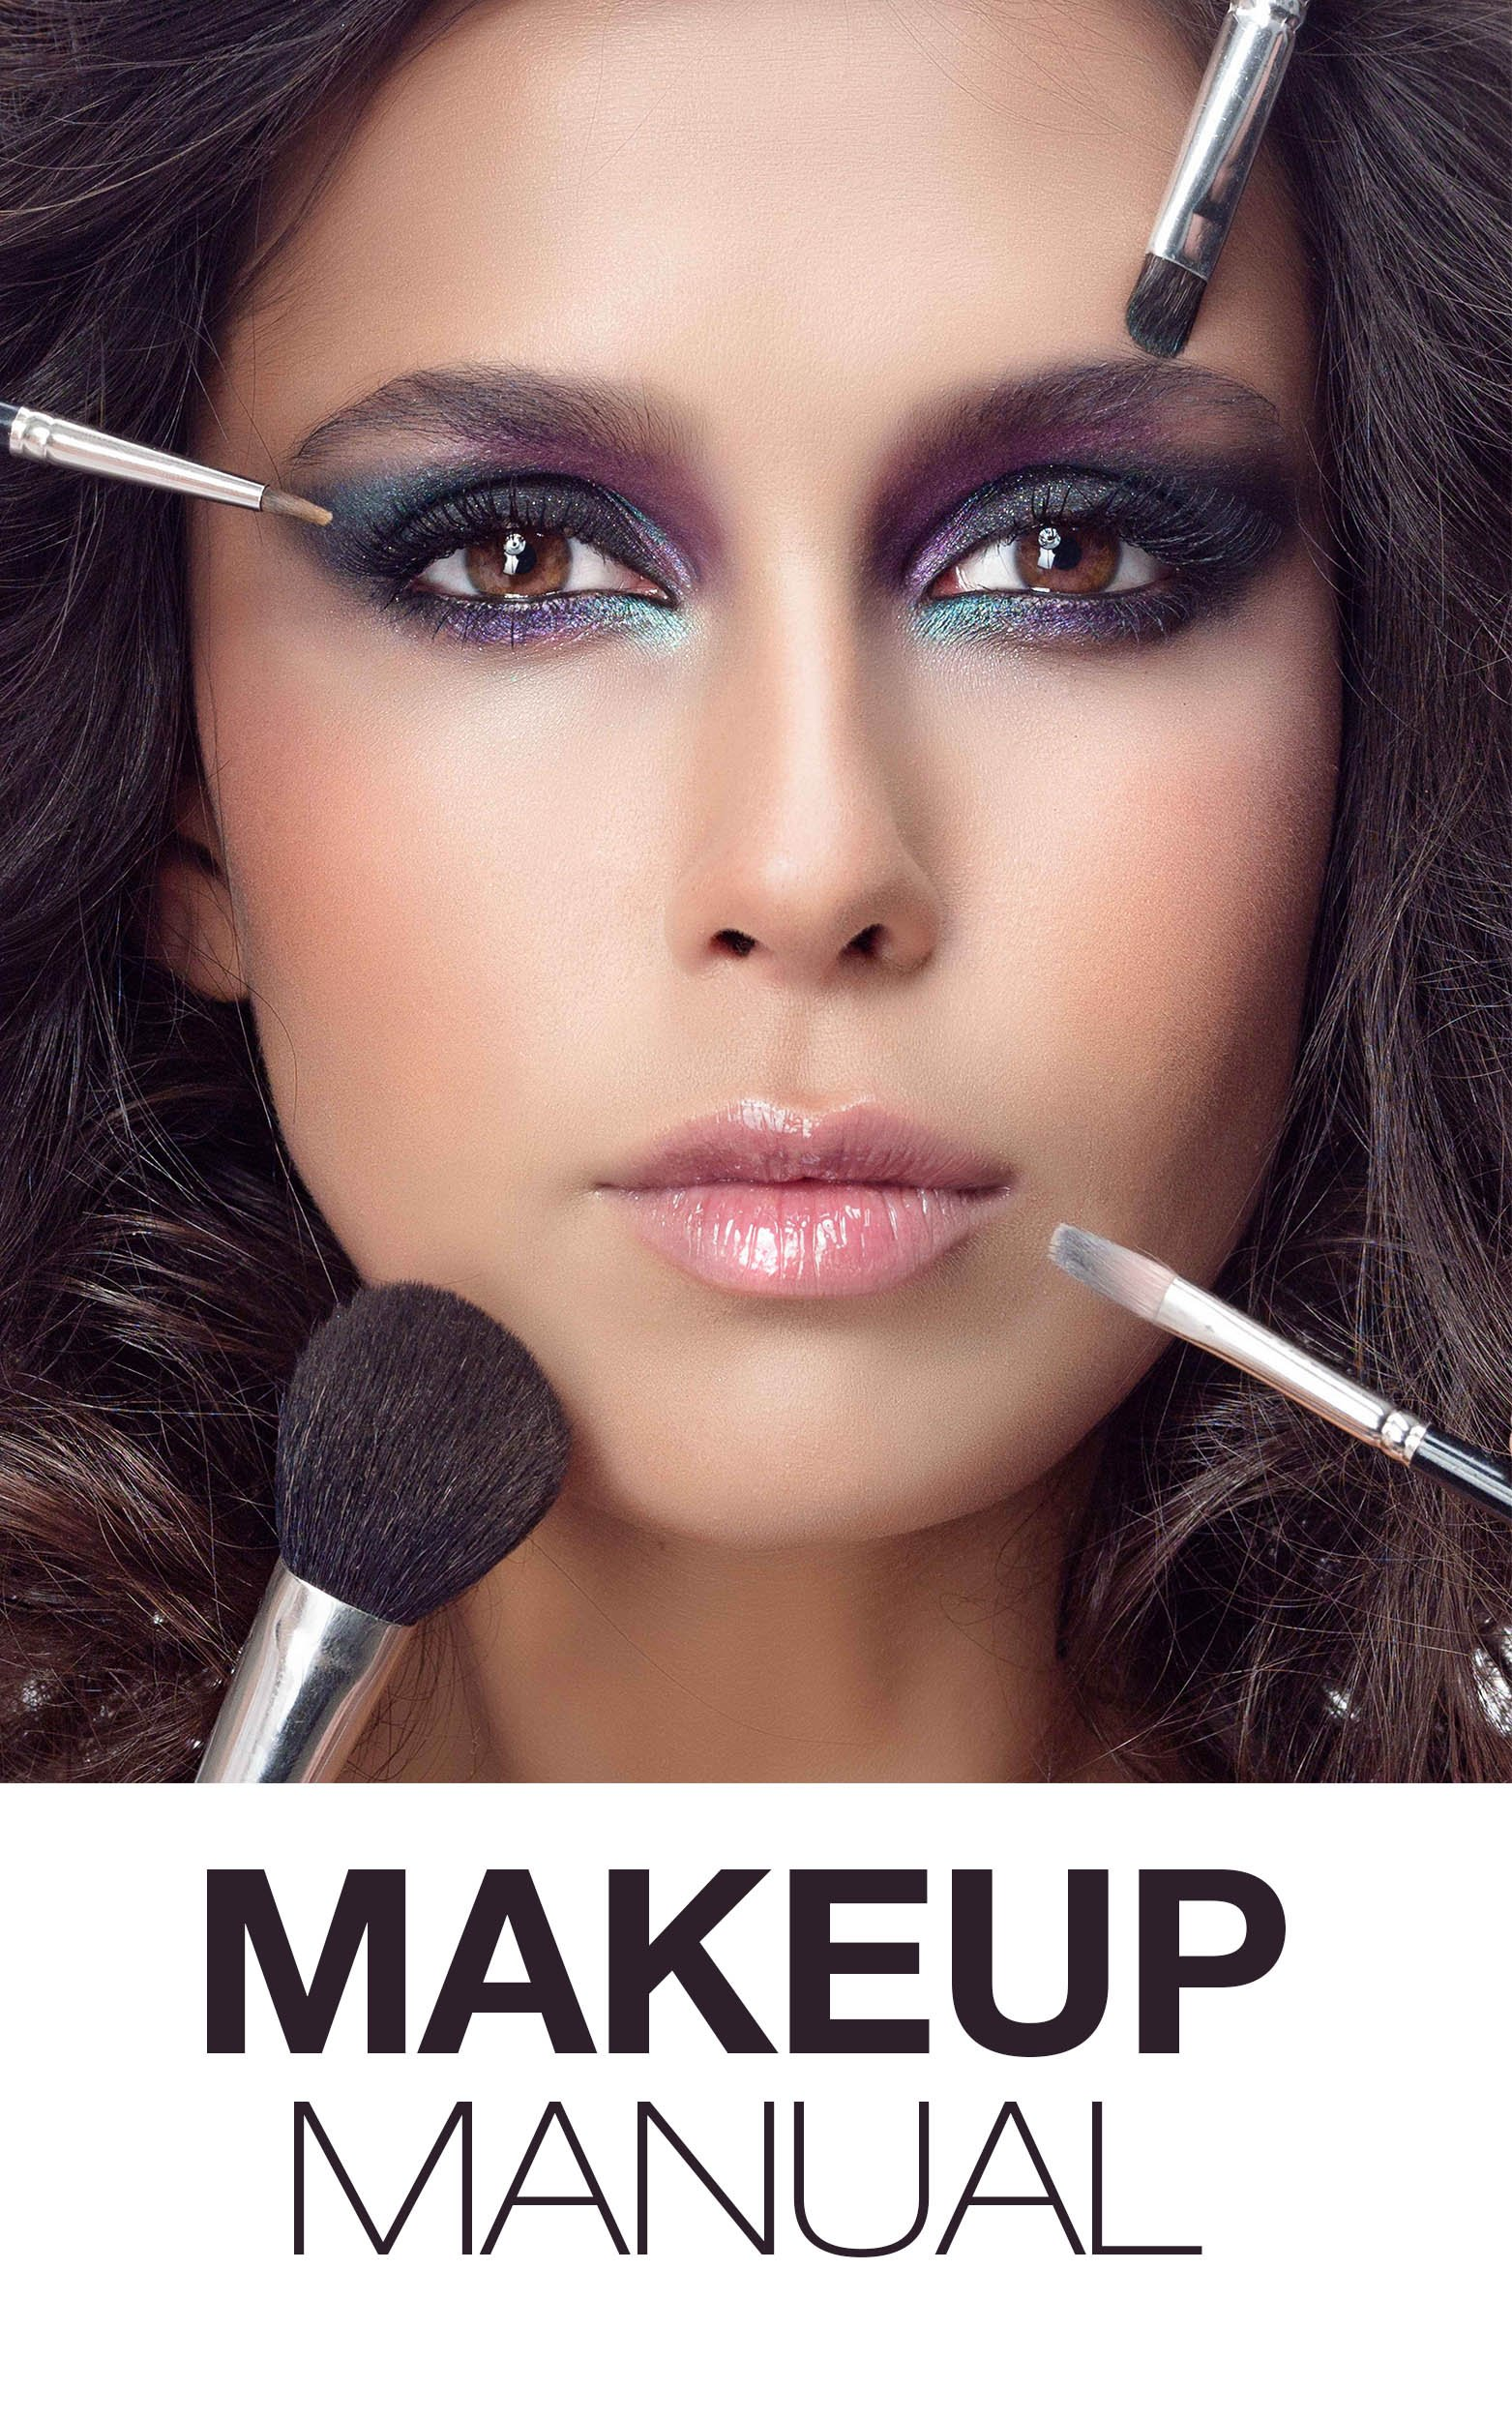 Makeup Manual For The Everyday Women  Look And Feel Your Best  How To Create Basic And Dramatic Looks In A Way That Is Pretty And Modern   English Edition